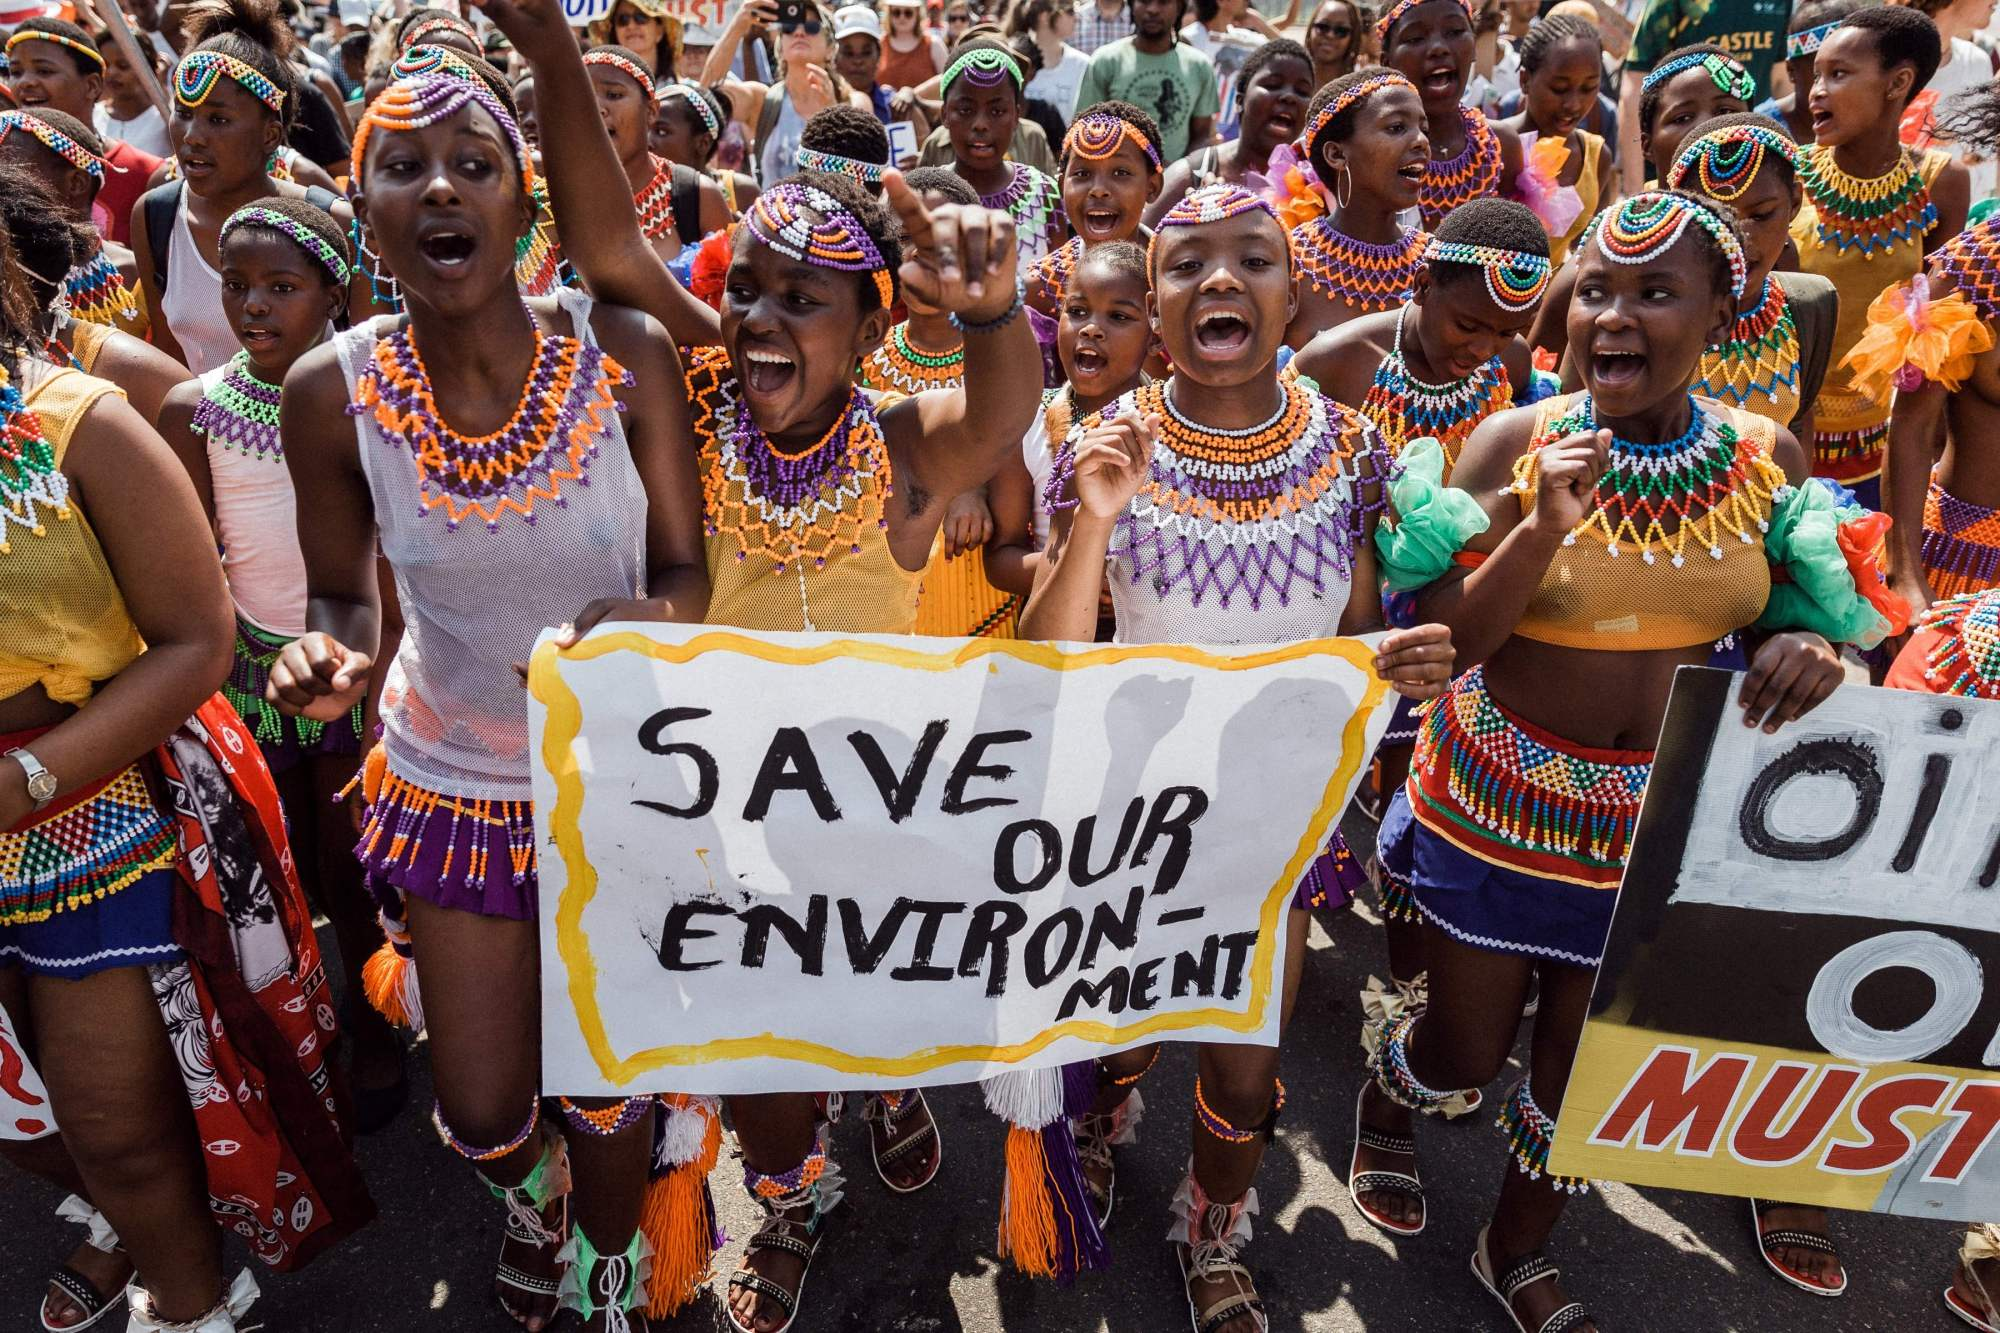 People take part in a protest for climate action on September 20, 2019 in Durban, as part of a Global Climate action day.